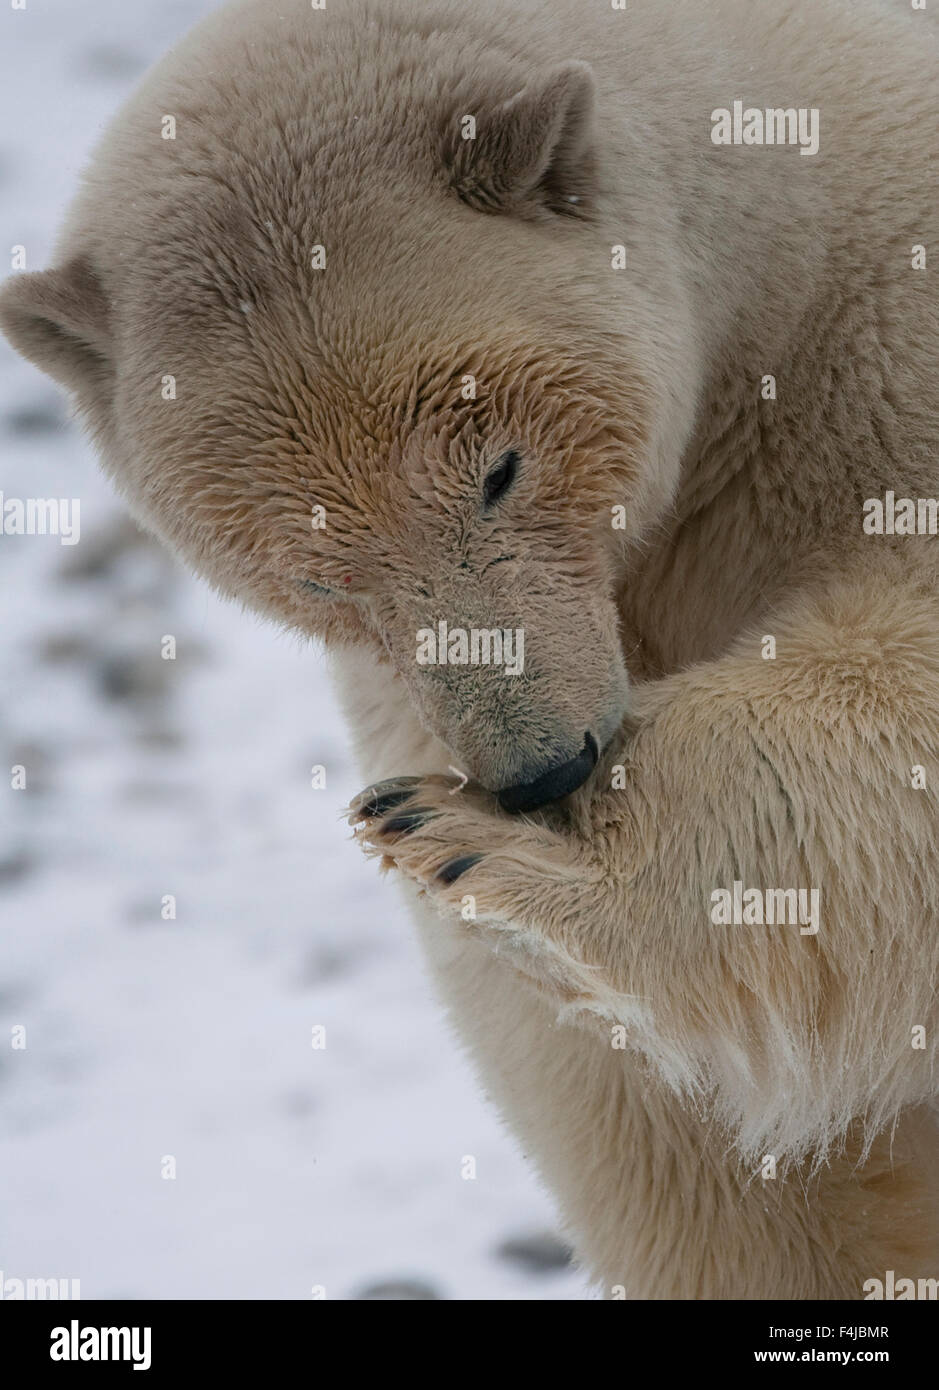 Polar bear (Ursus maritimus) cleaning paws after meal, Svalbard, Norway, September 2009 - Stock Image